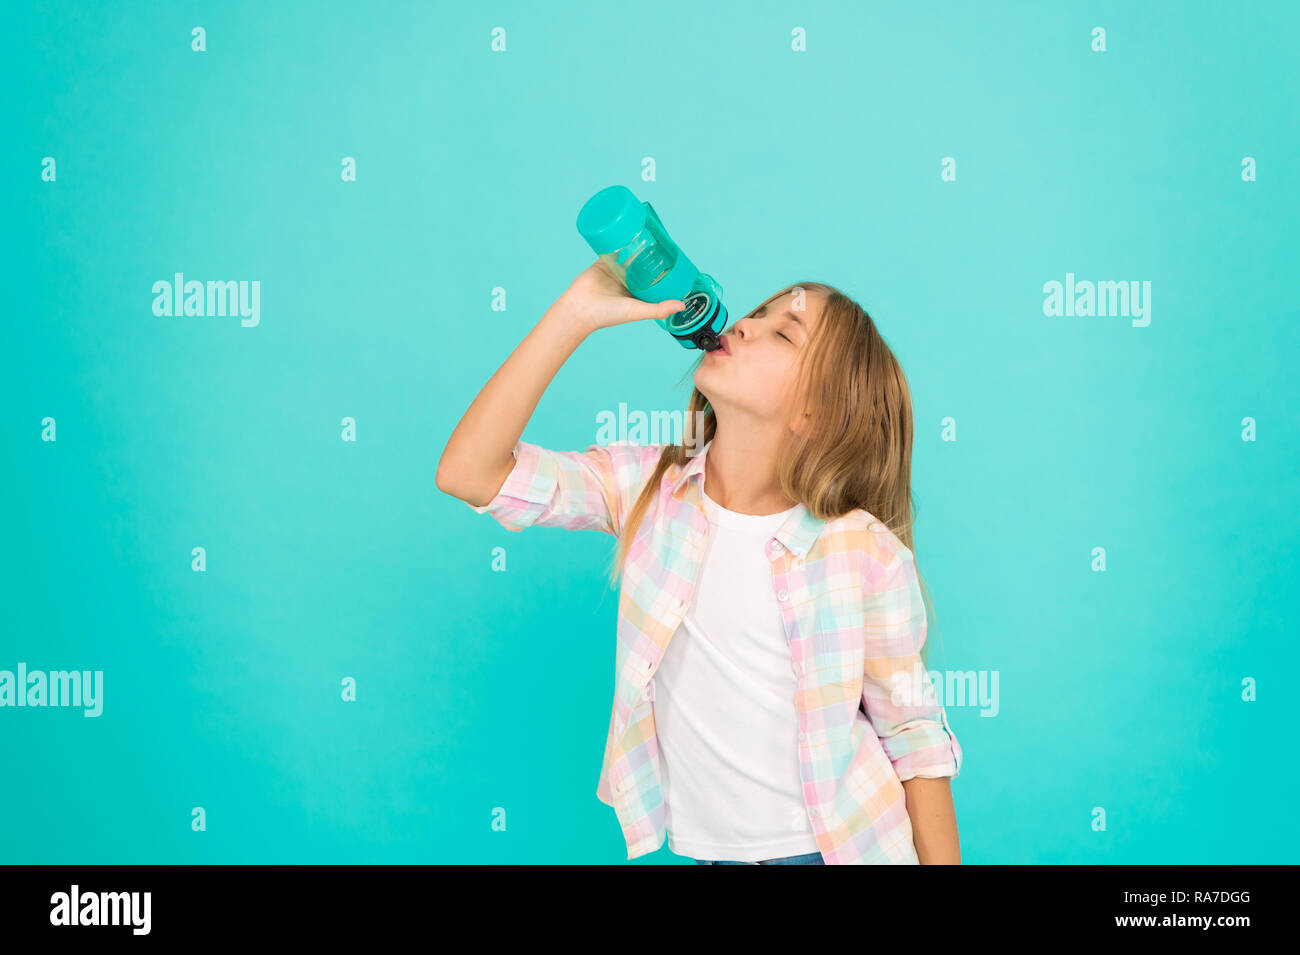 Kid hold bottle blue background. Water balance concept. Healthy and hydrated. Pediatric disorders of water balance. Girl cares about health and water balance. Child girl long hair has water bottle. - Stock Image